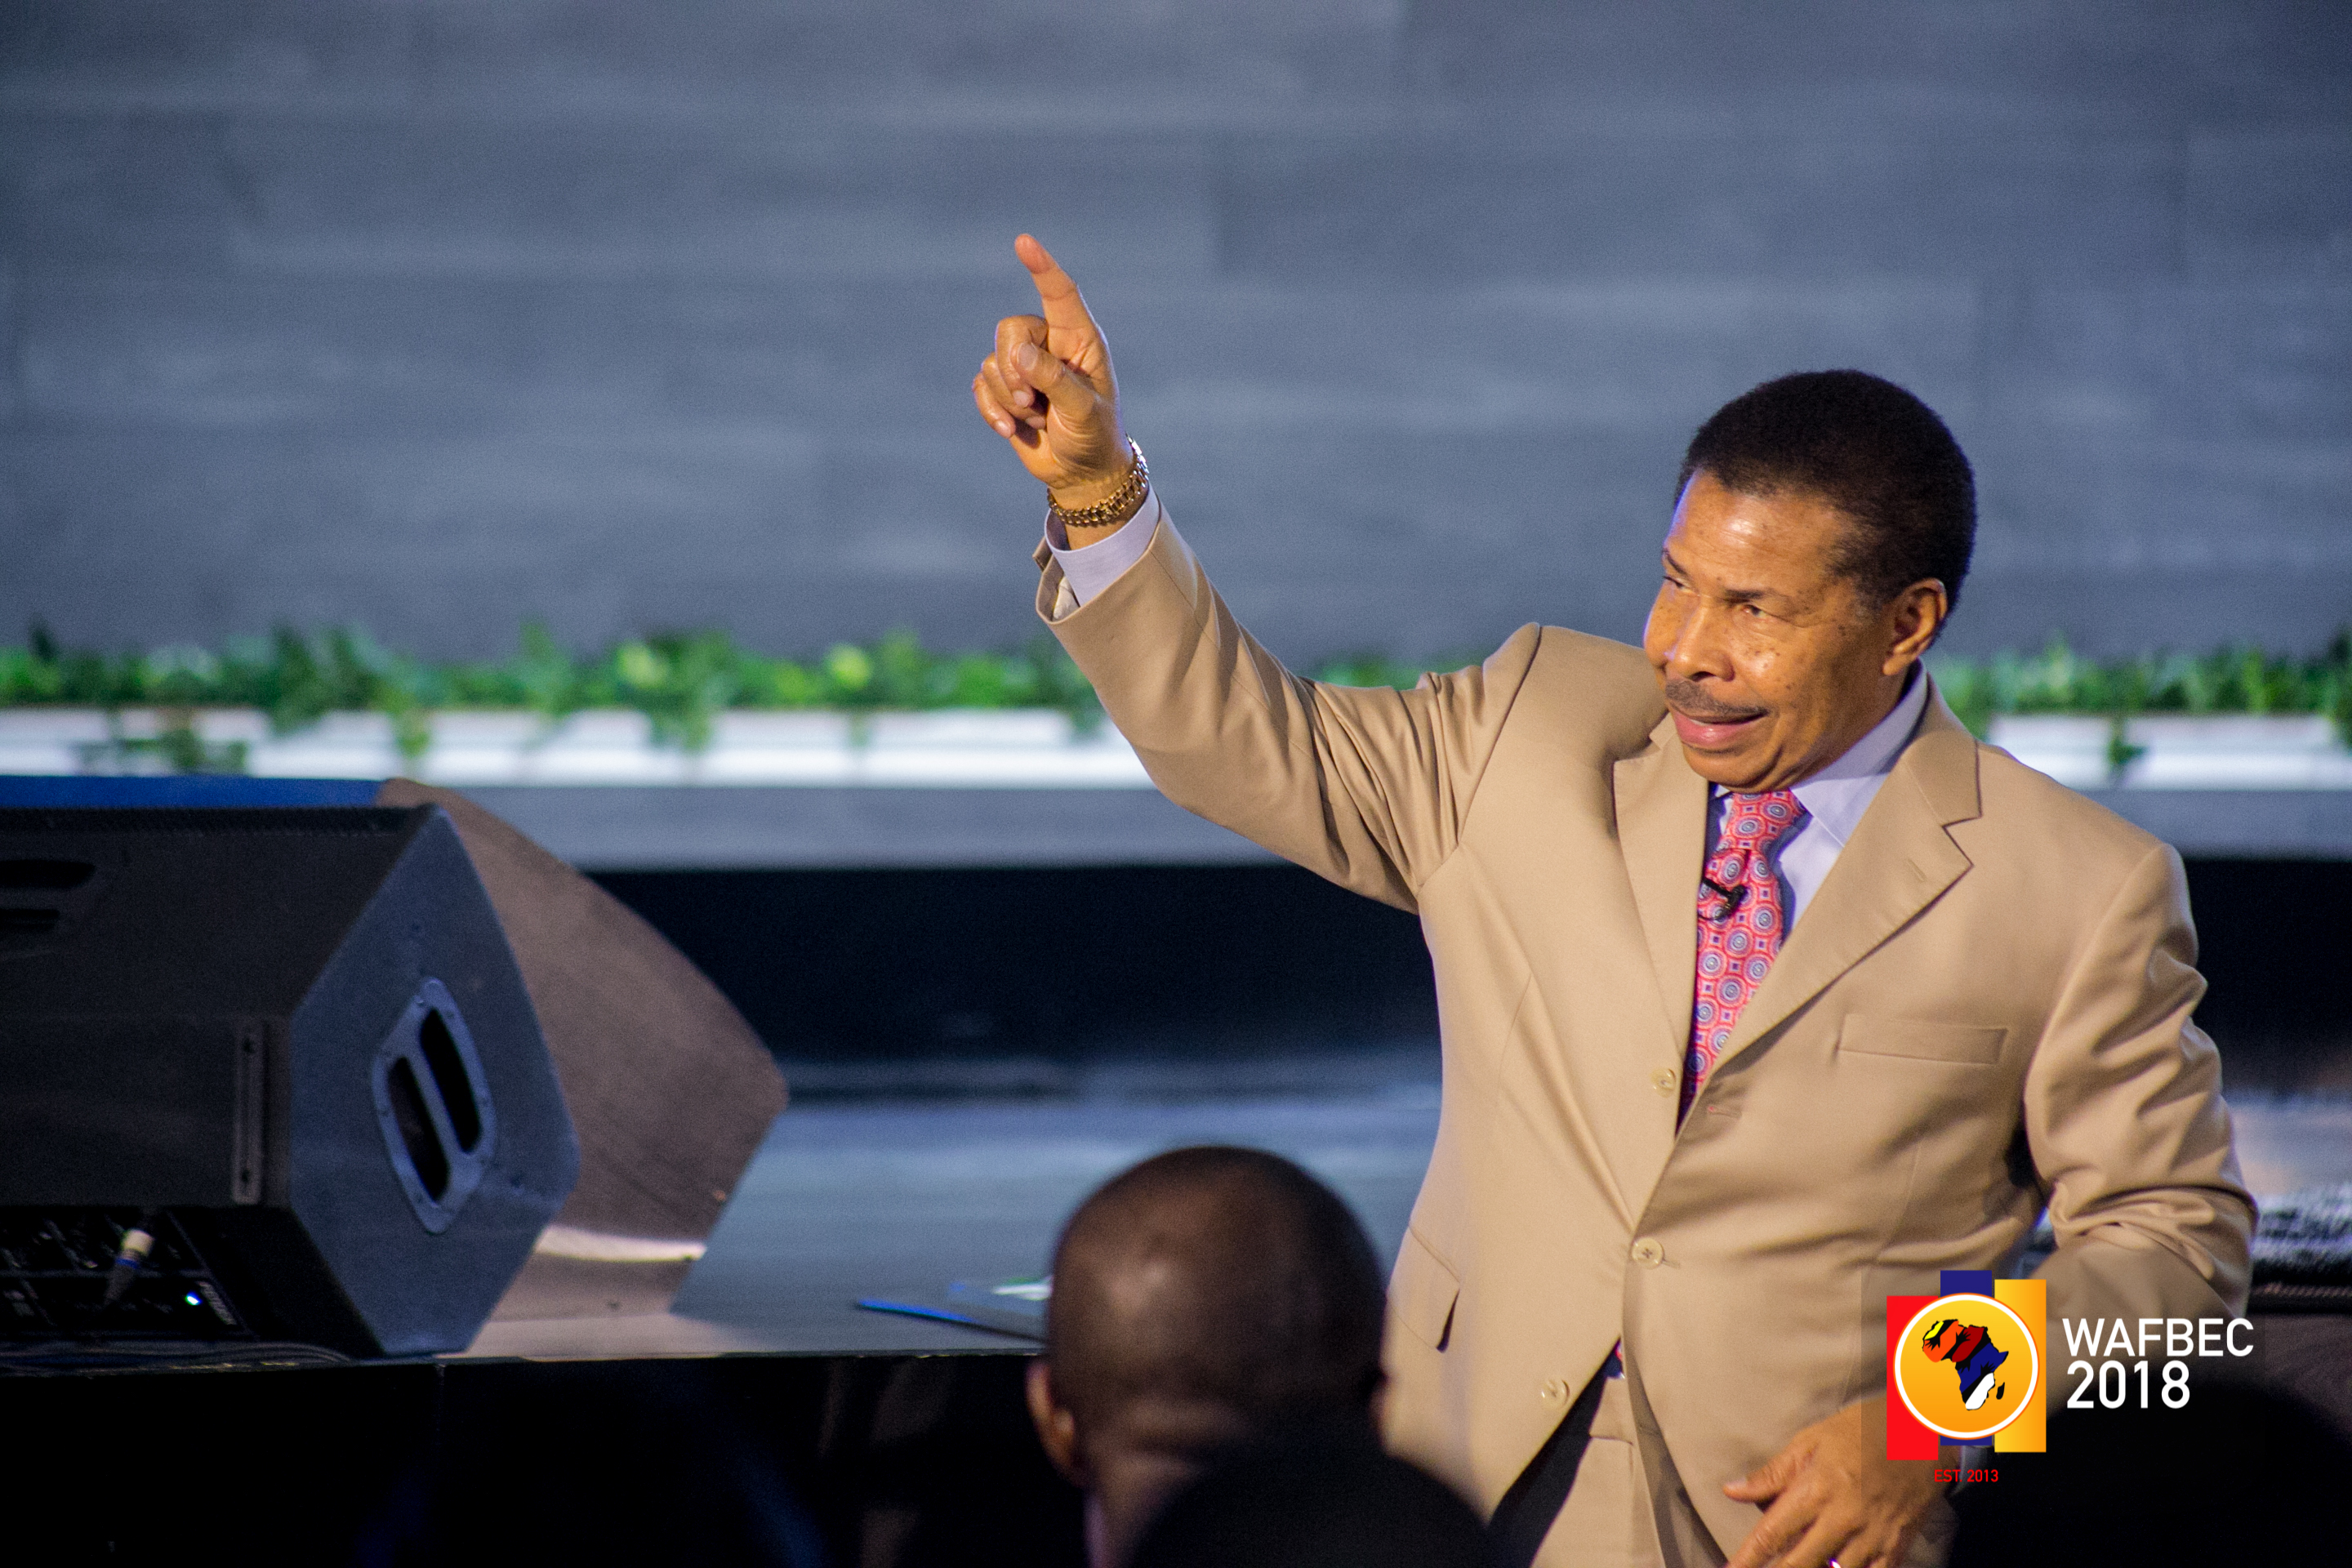 WAFBEC 2018 – Day 8 (Morning Session 1) with Dr. Bill Winston